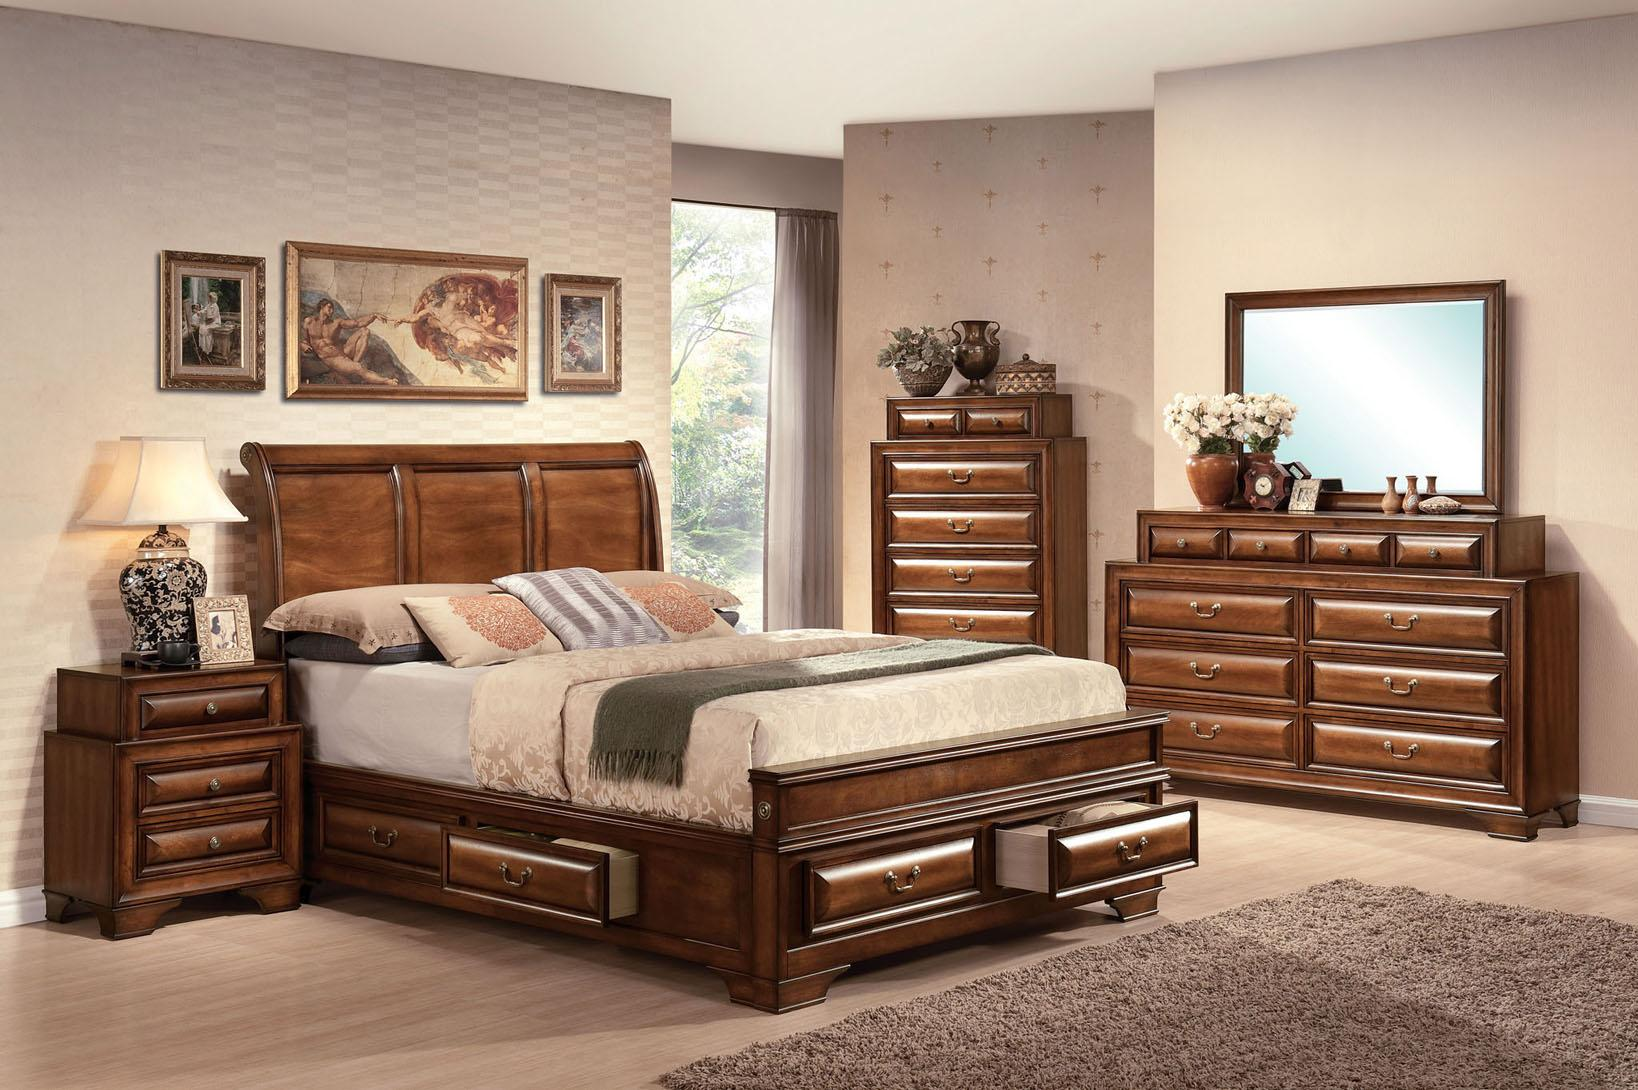 Acme Furniture Konane King Bedroom Group - Item Number: 204 K Bedroom Group